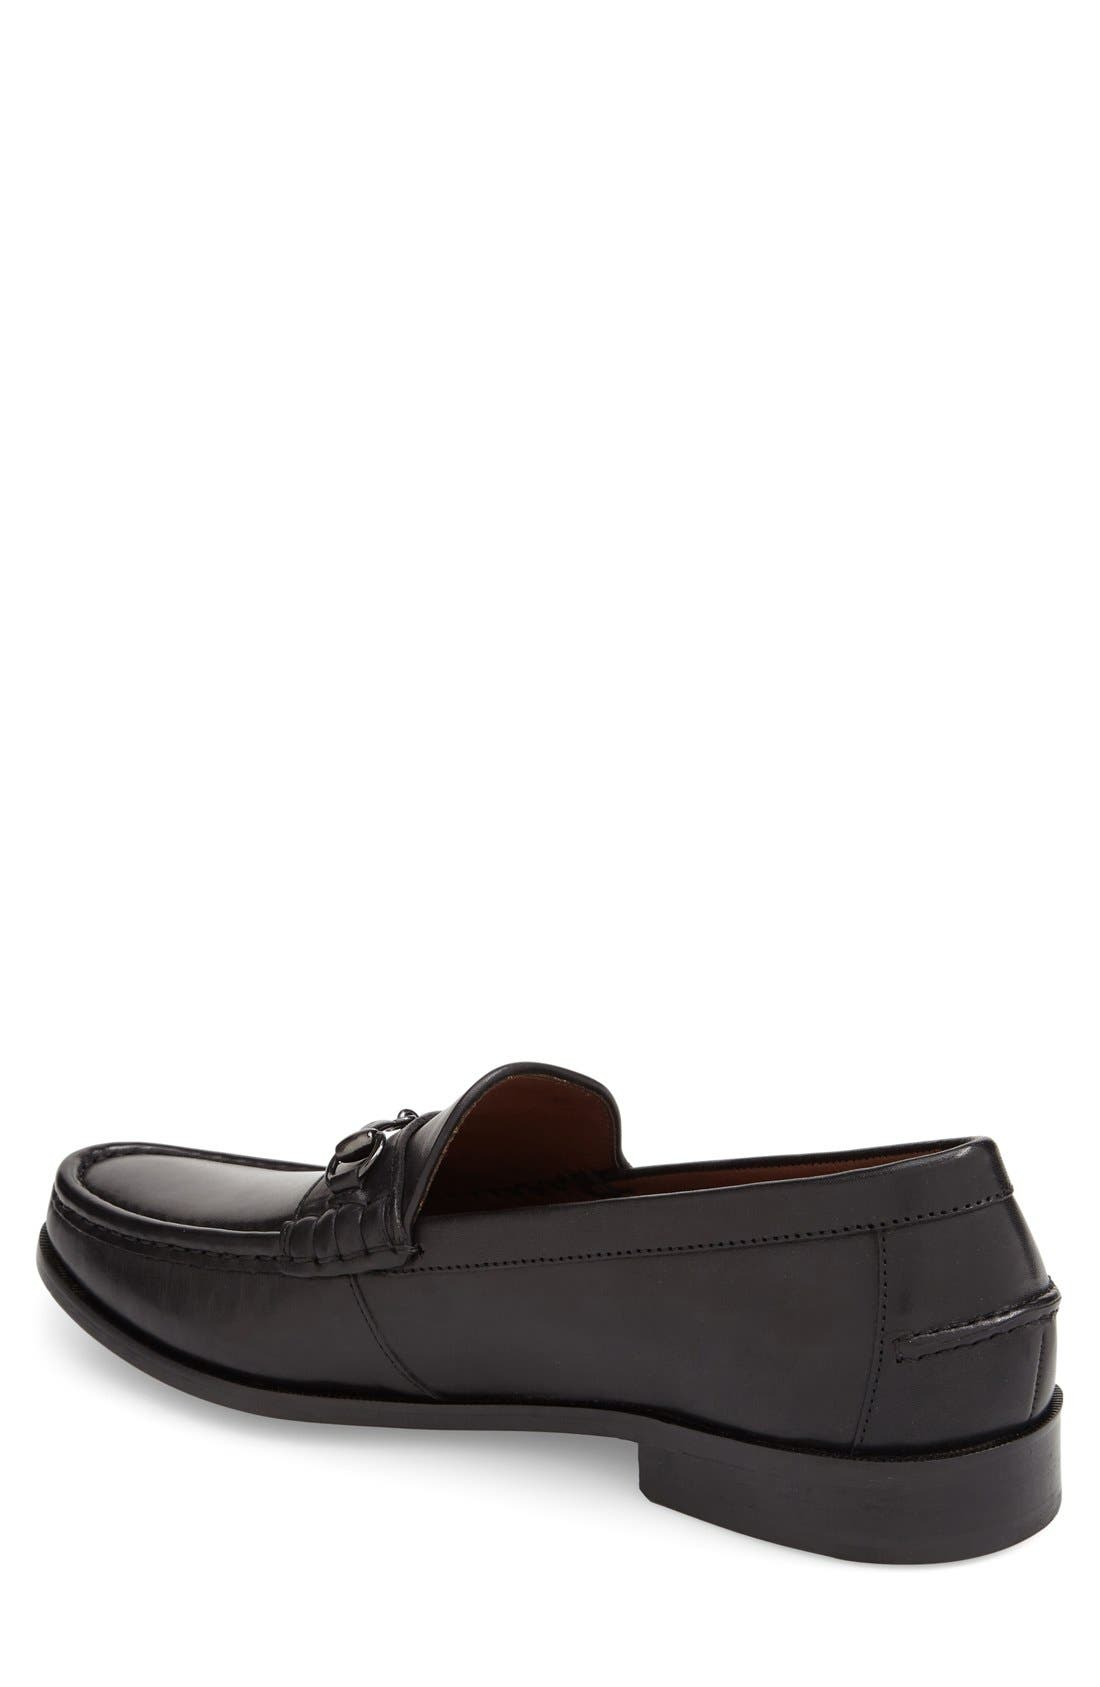 Pinch Gotham Bit Loafer,                             Alternate thumbnail 2, color,                             Black Leather